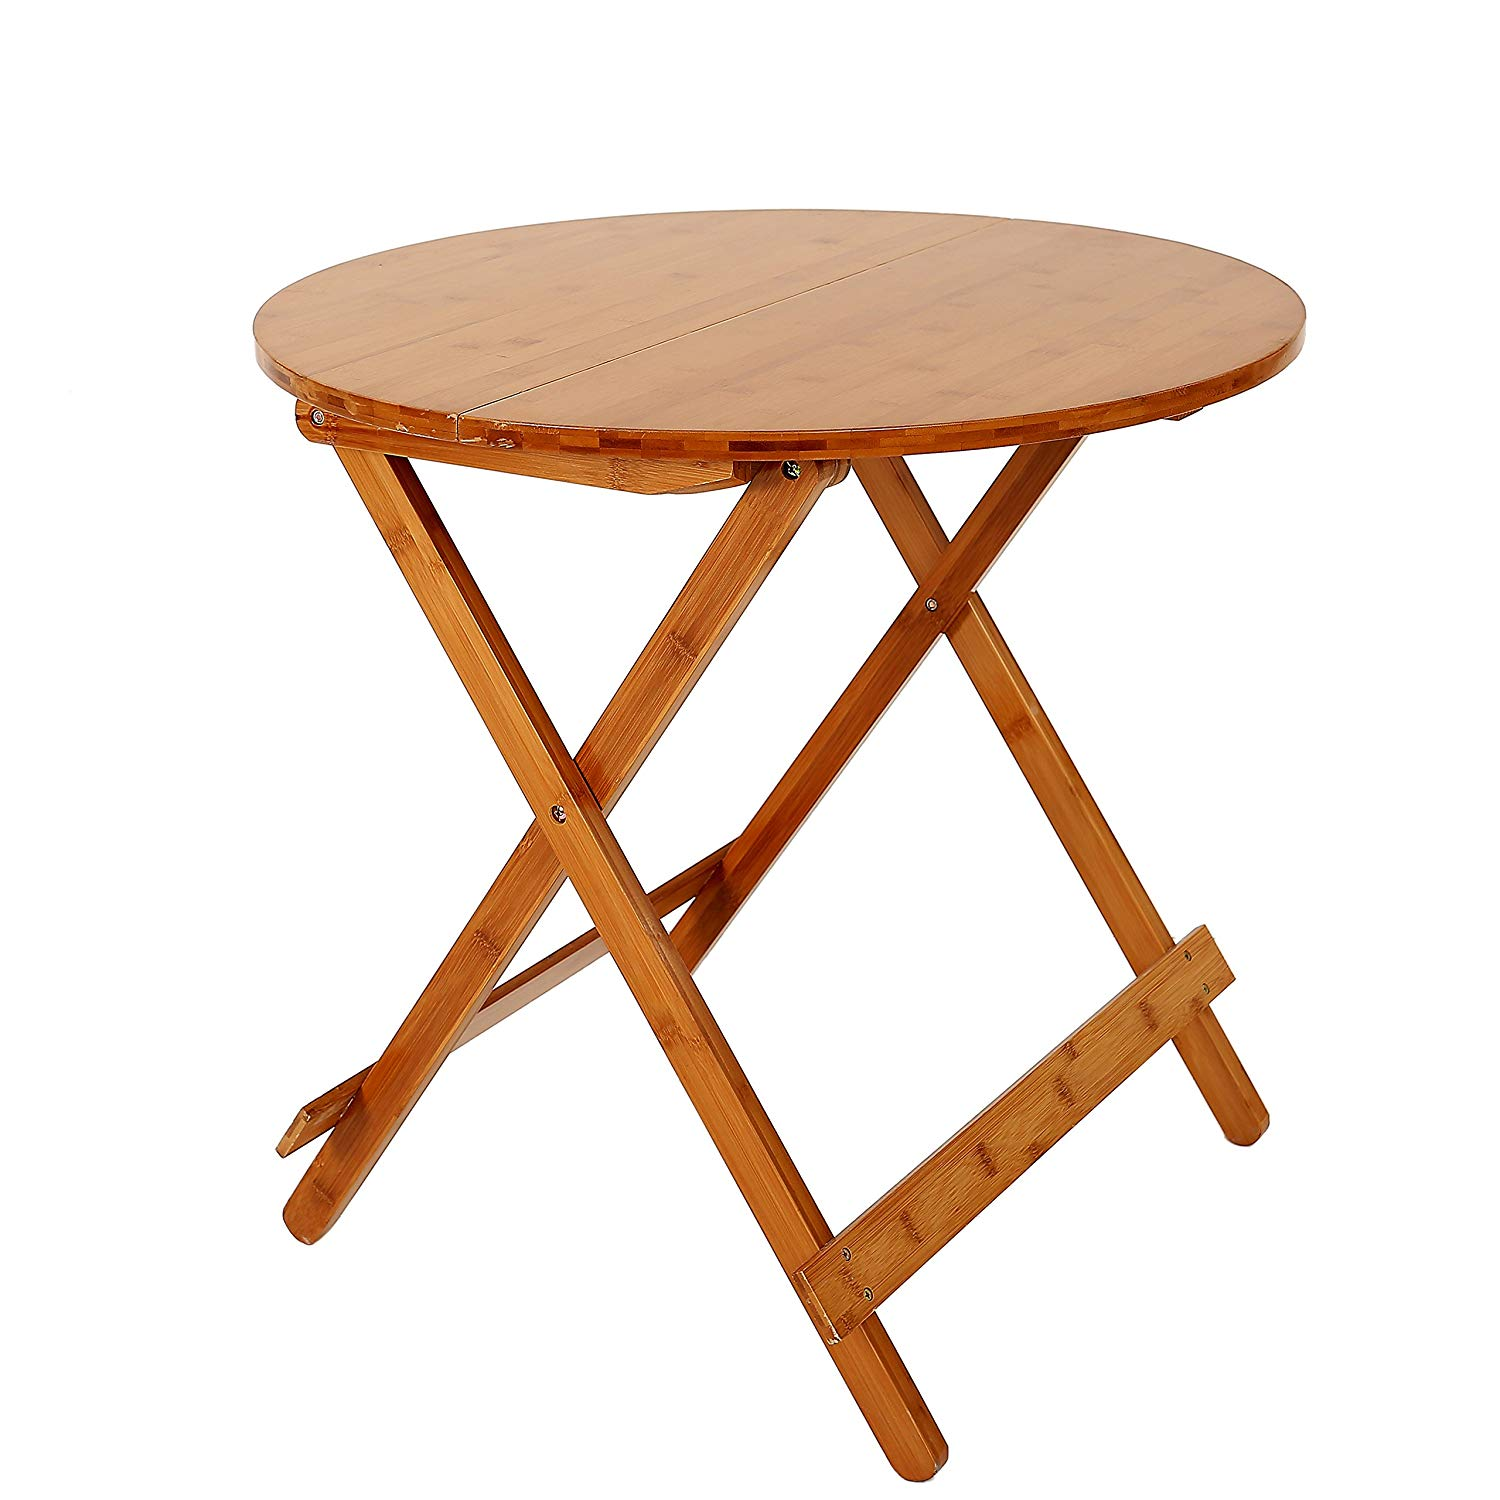 48daf5a7bd19 Cheap Round Folding Card Table, find Round Folding Card Table deals ...